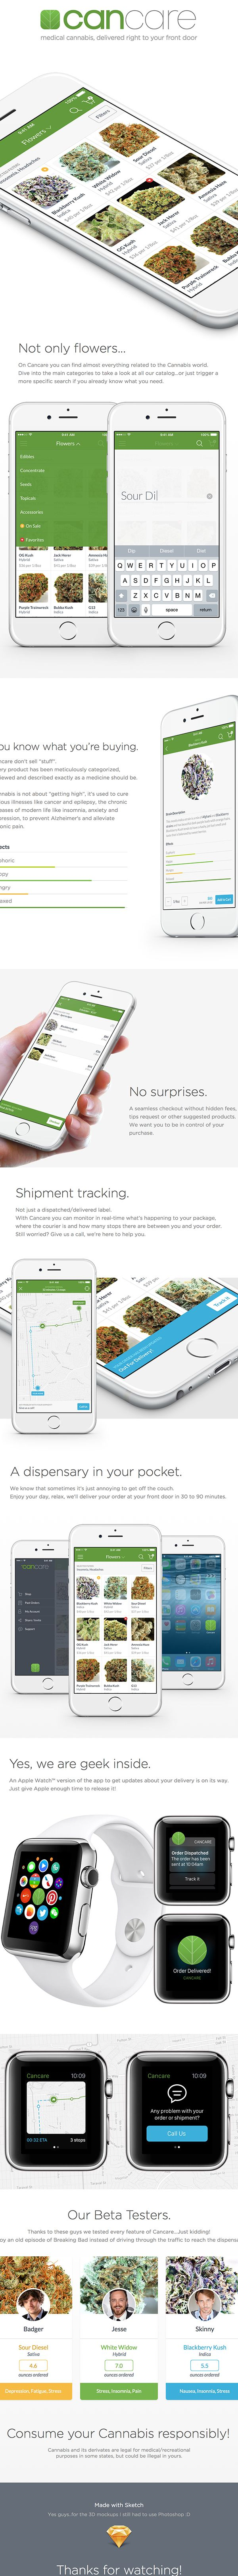 Cancare - Medical Marijuana Delivery App